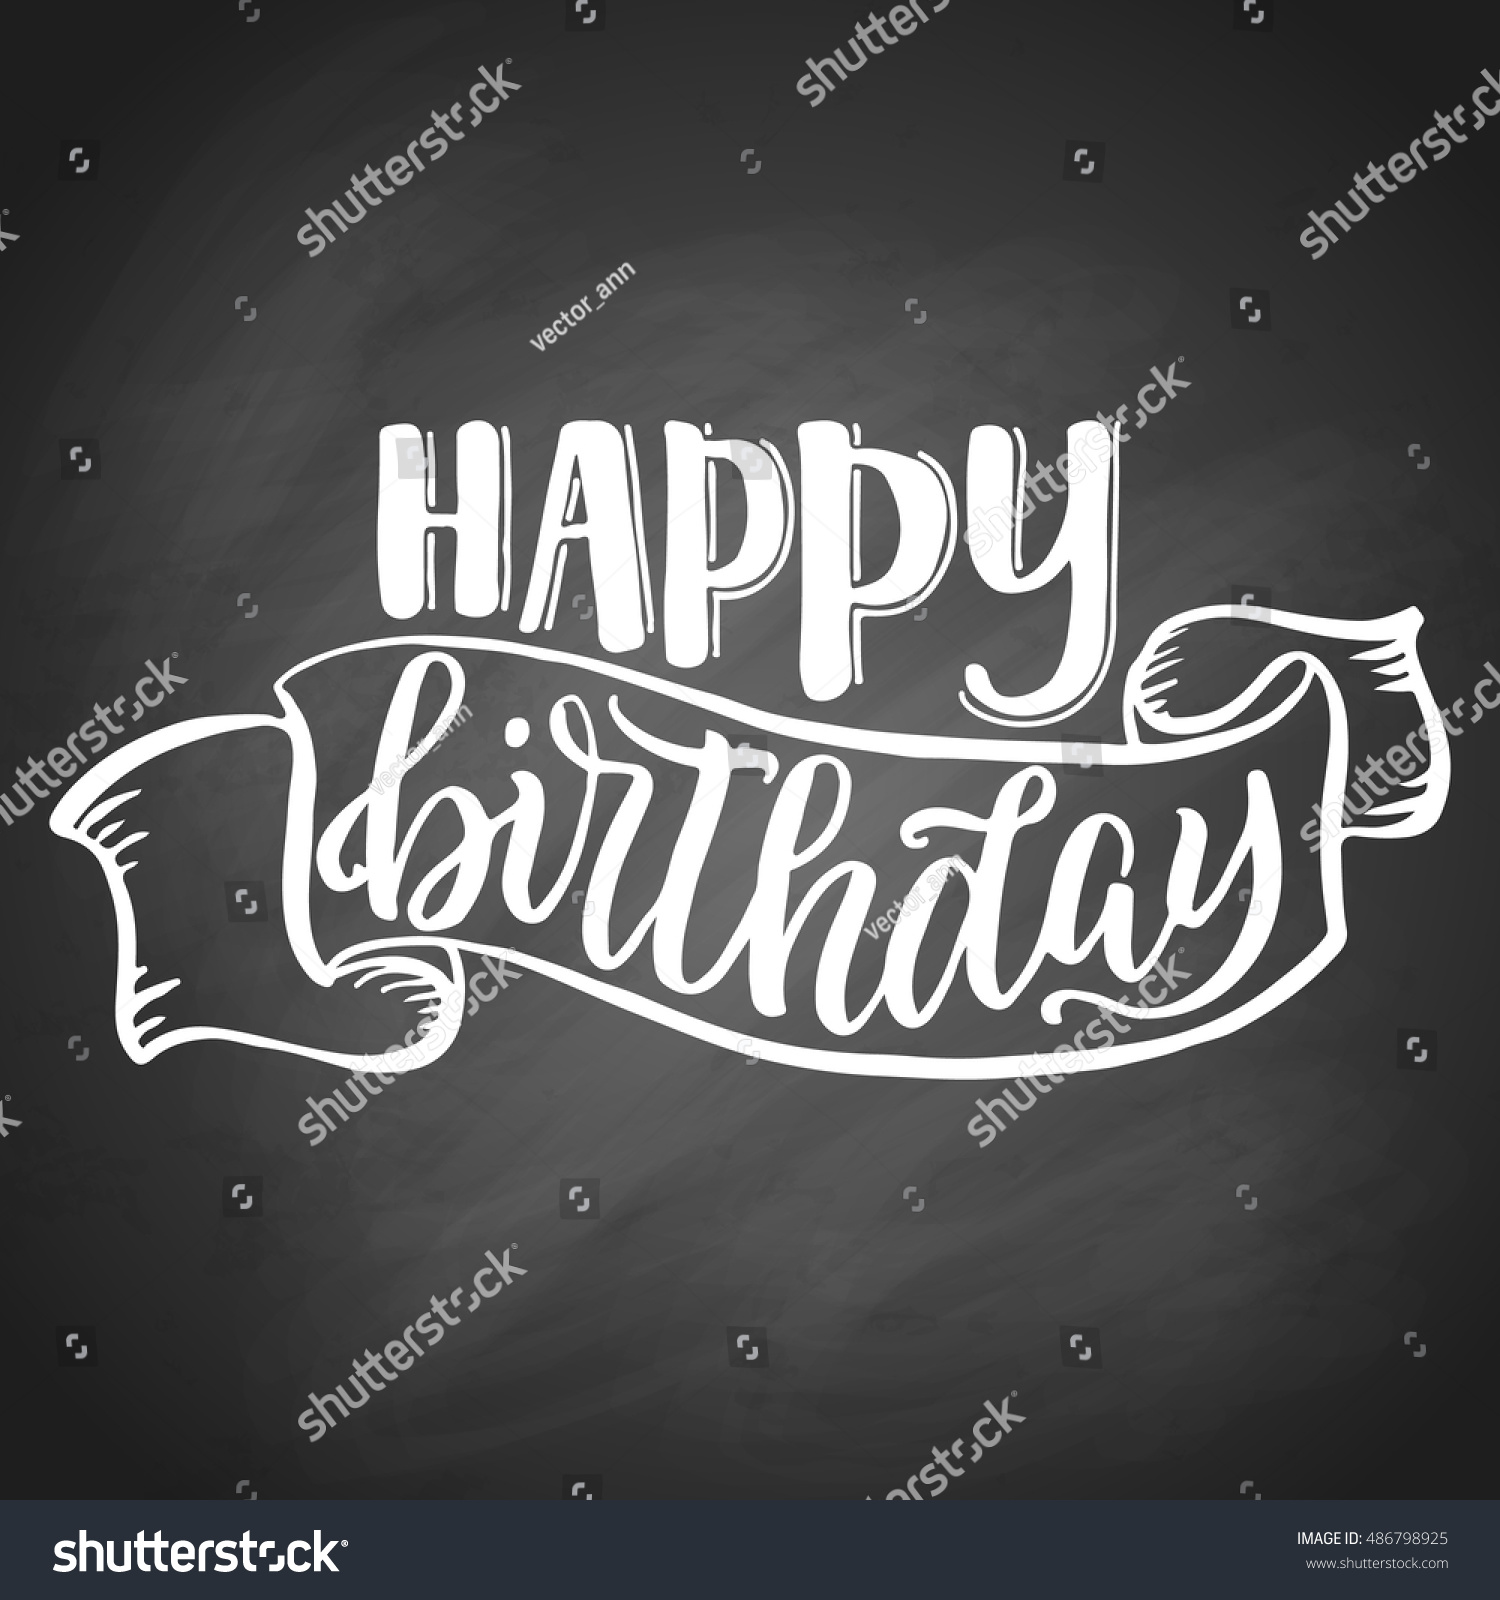 Happy Birthday Hand Lettering With Sketch Ribbon On Black Chalkboard Background Vector Illustration